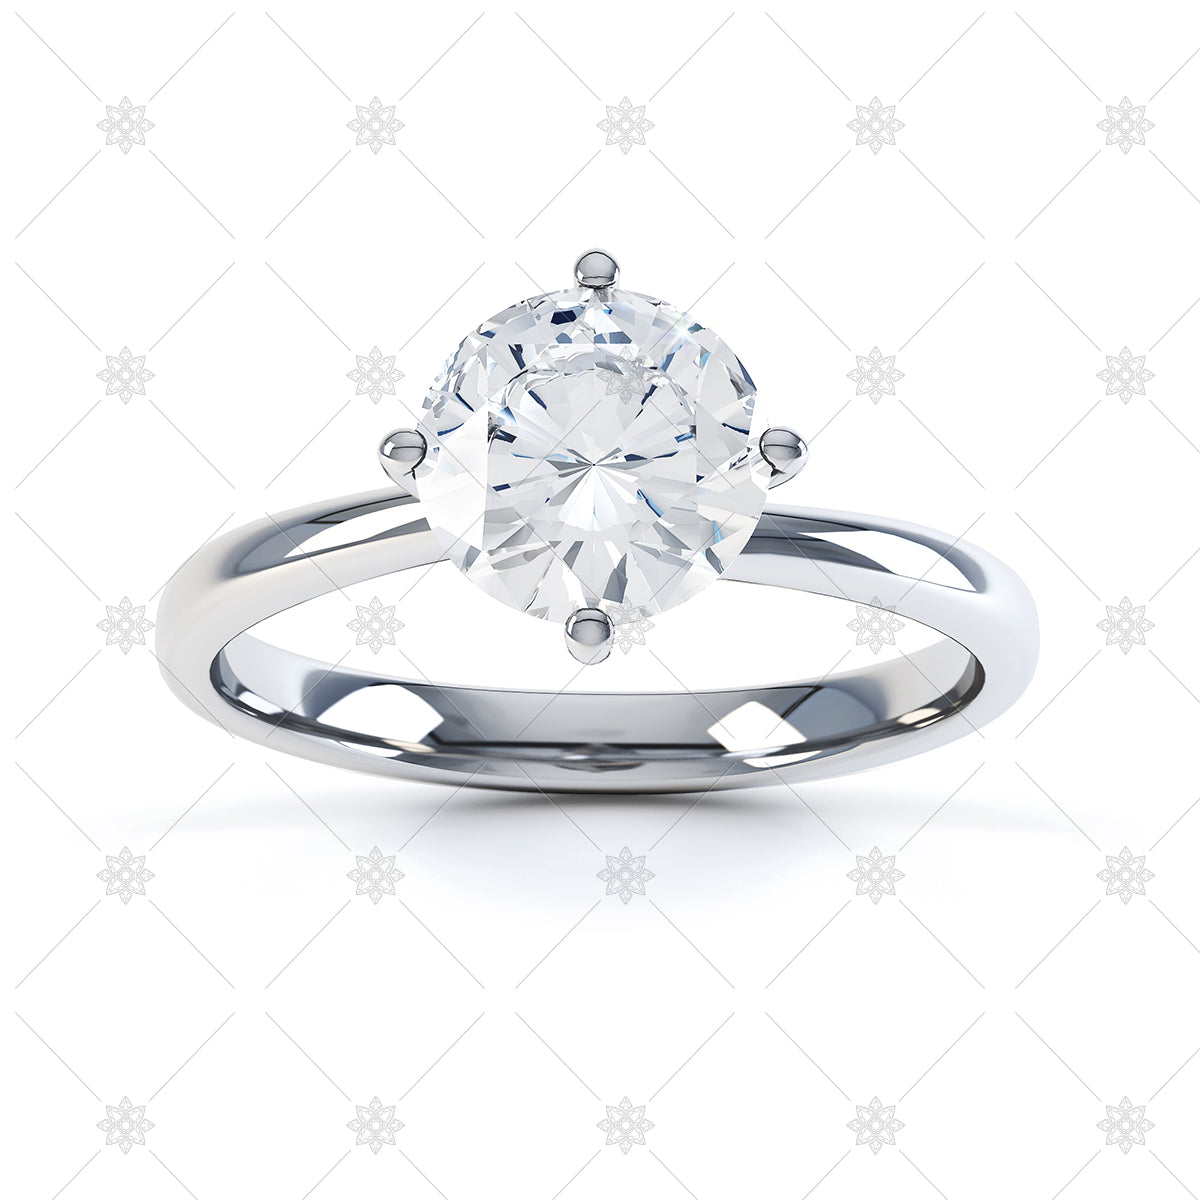 Round 4 claw white diamond ring